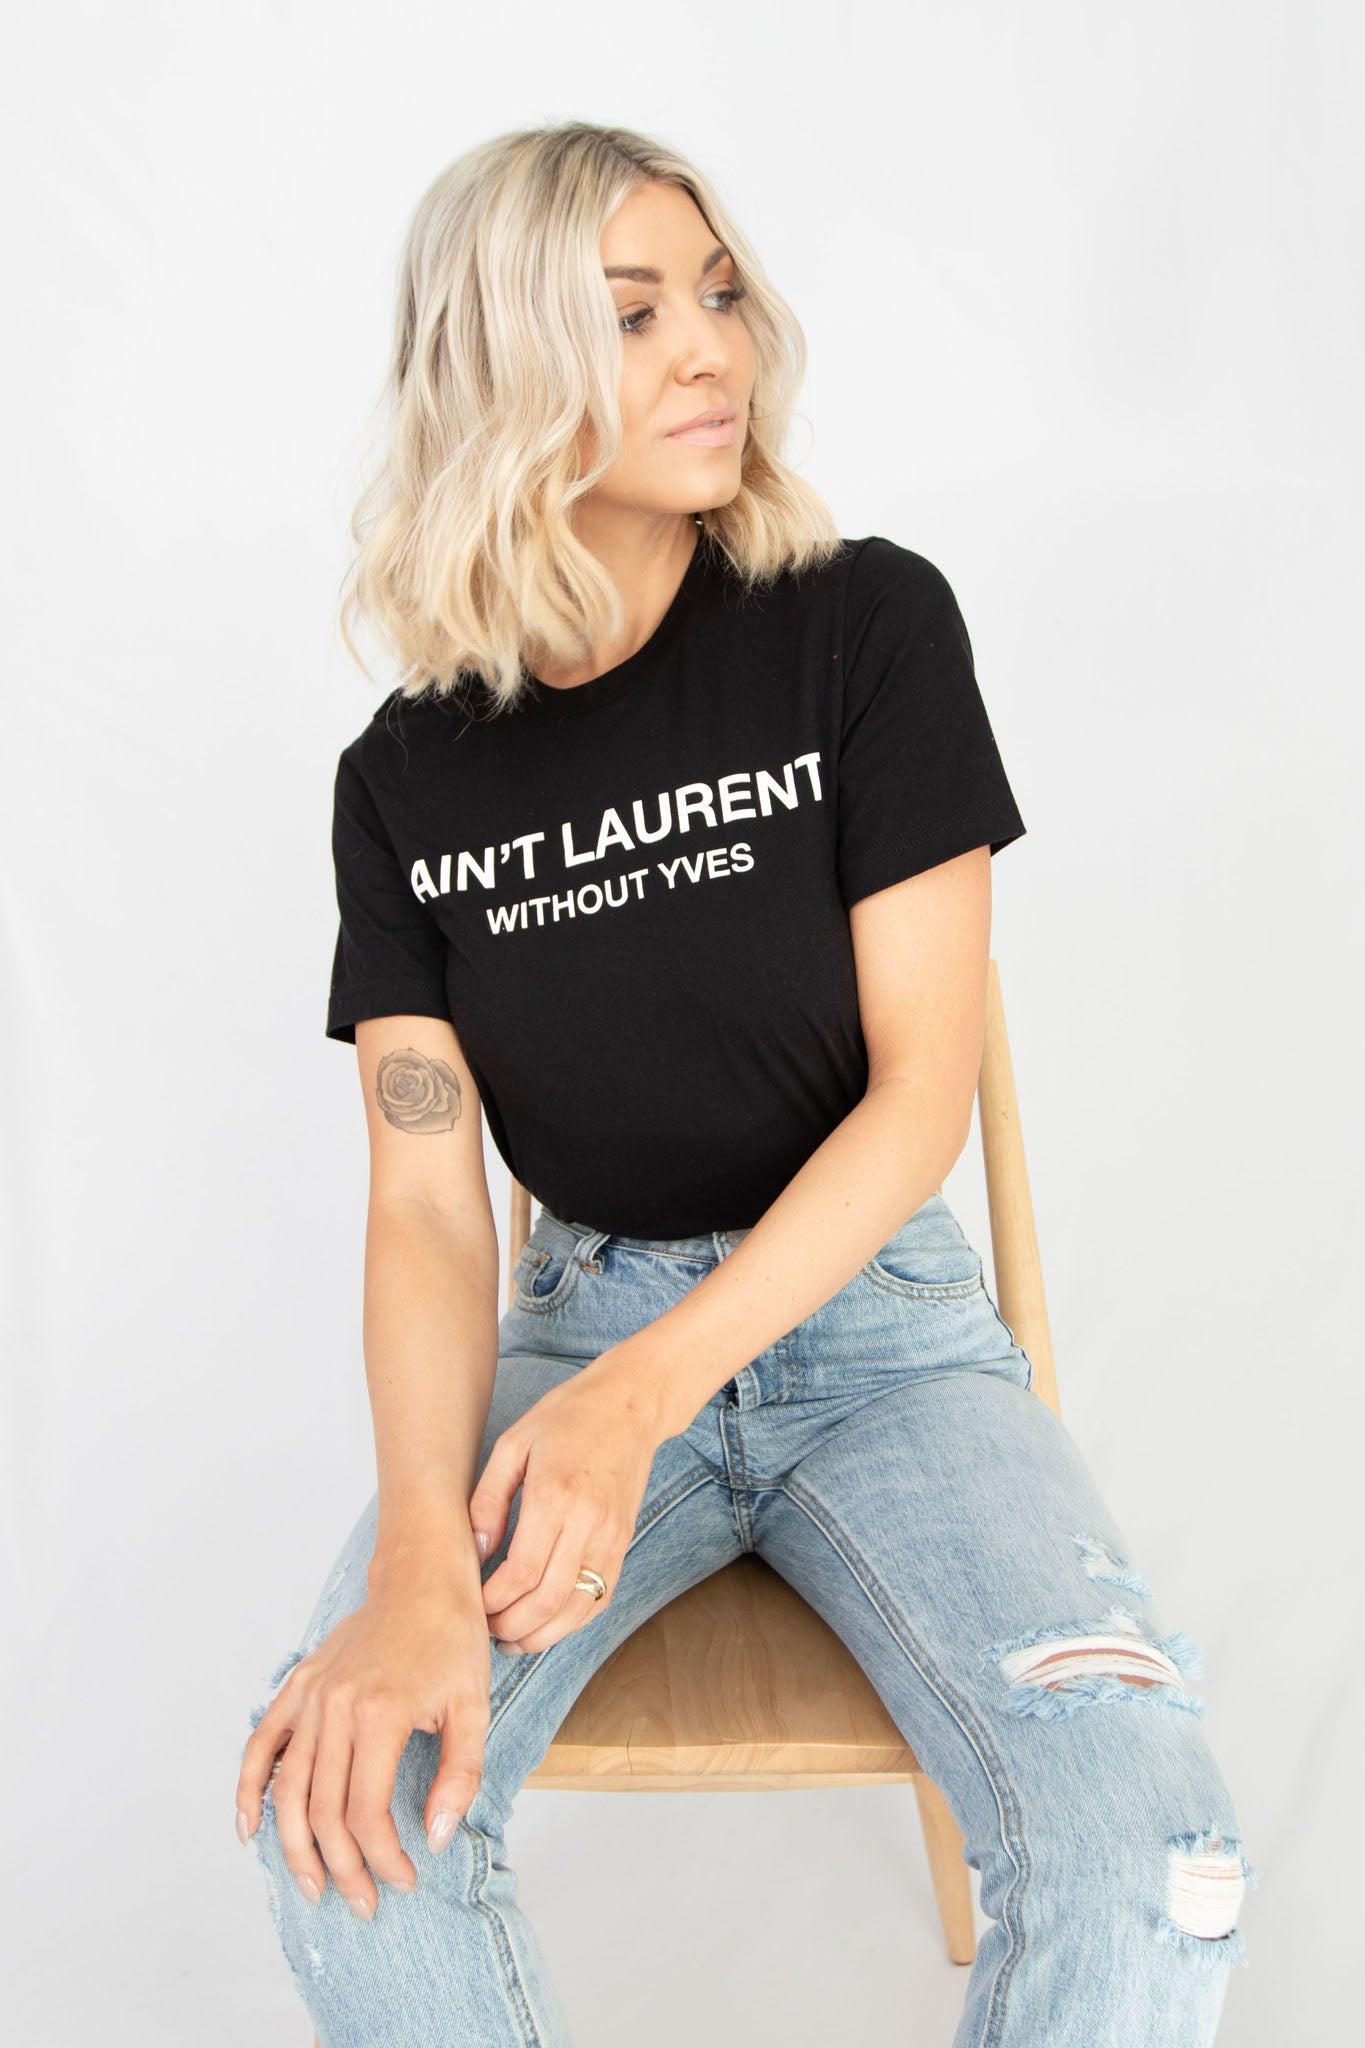 'AIN'T LAURENT WITHOUT YVES' Short Sleeve Graphic TShirt - Black + White